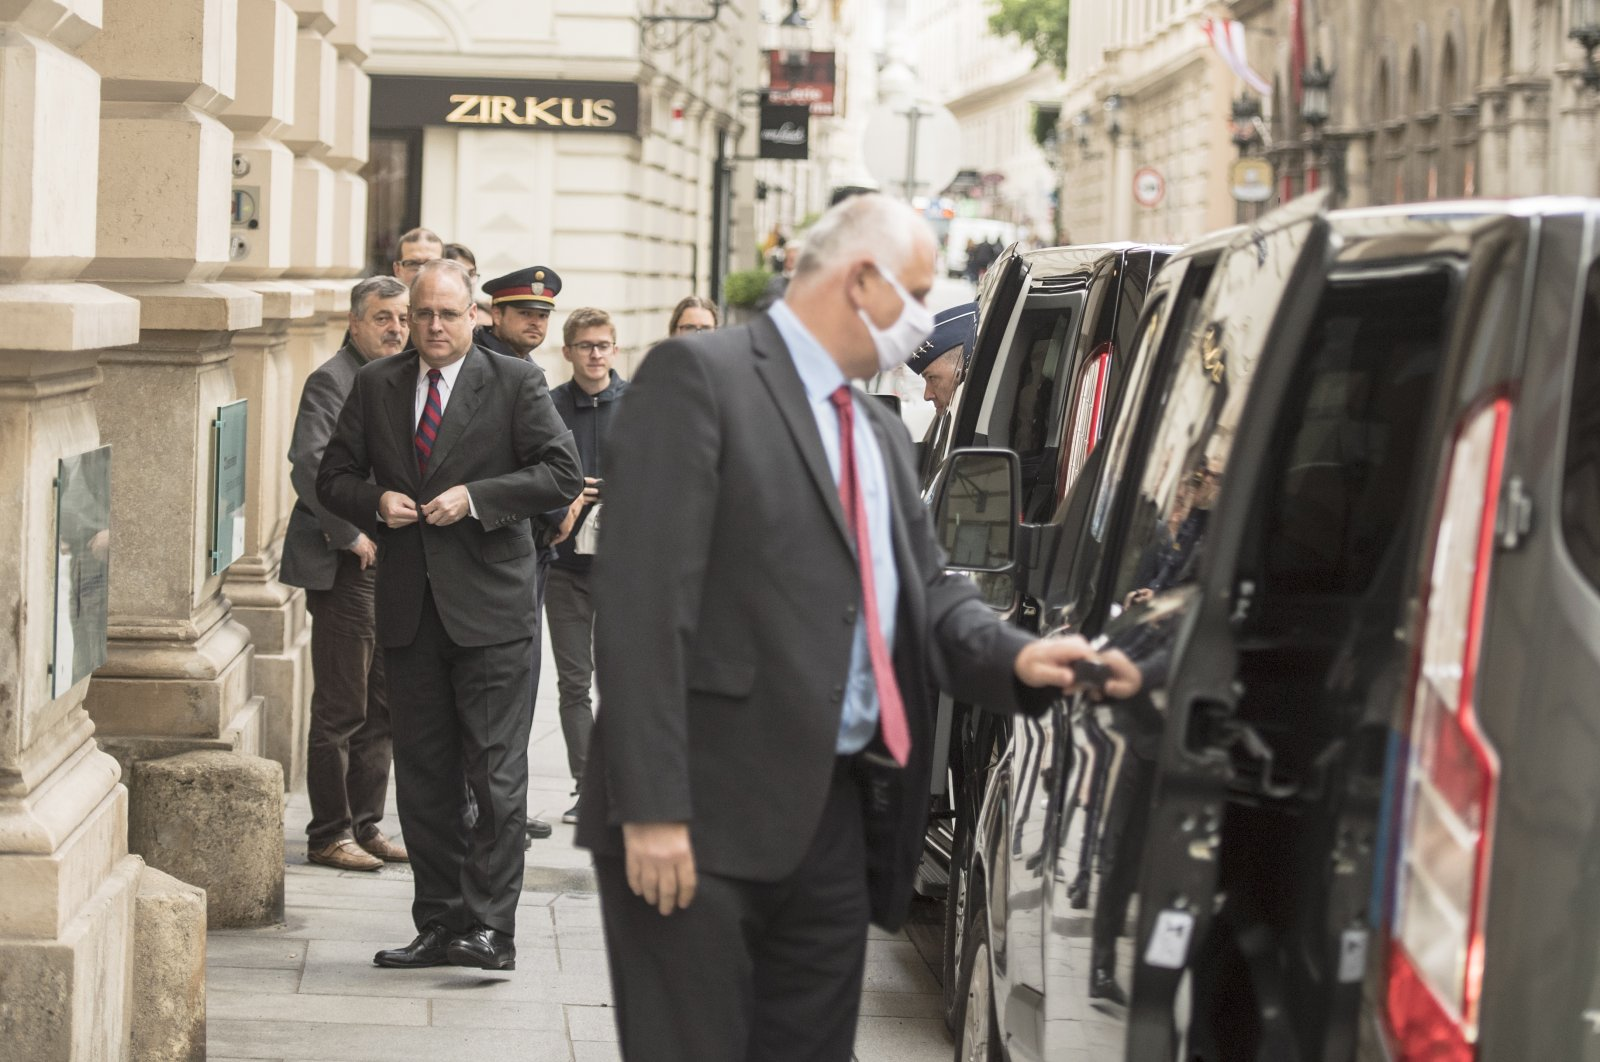 Marshall Billingslea (C-L), the U.S.' Special Presidential Envoy for Arms Control, arrives for a meeting between Russian and U.S. officials to resume negotiations concerning nuclear disarmament at the Palais Niederoesterreich, Vienna, June 22, 2020. (EPA Photo)